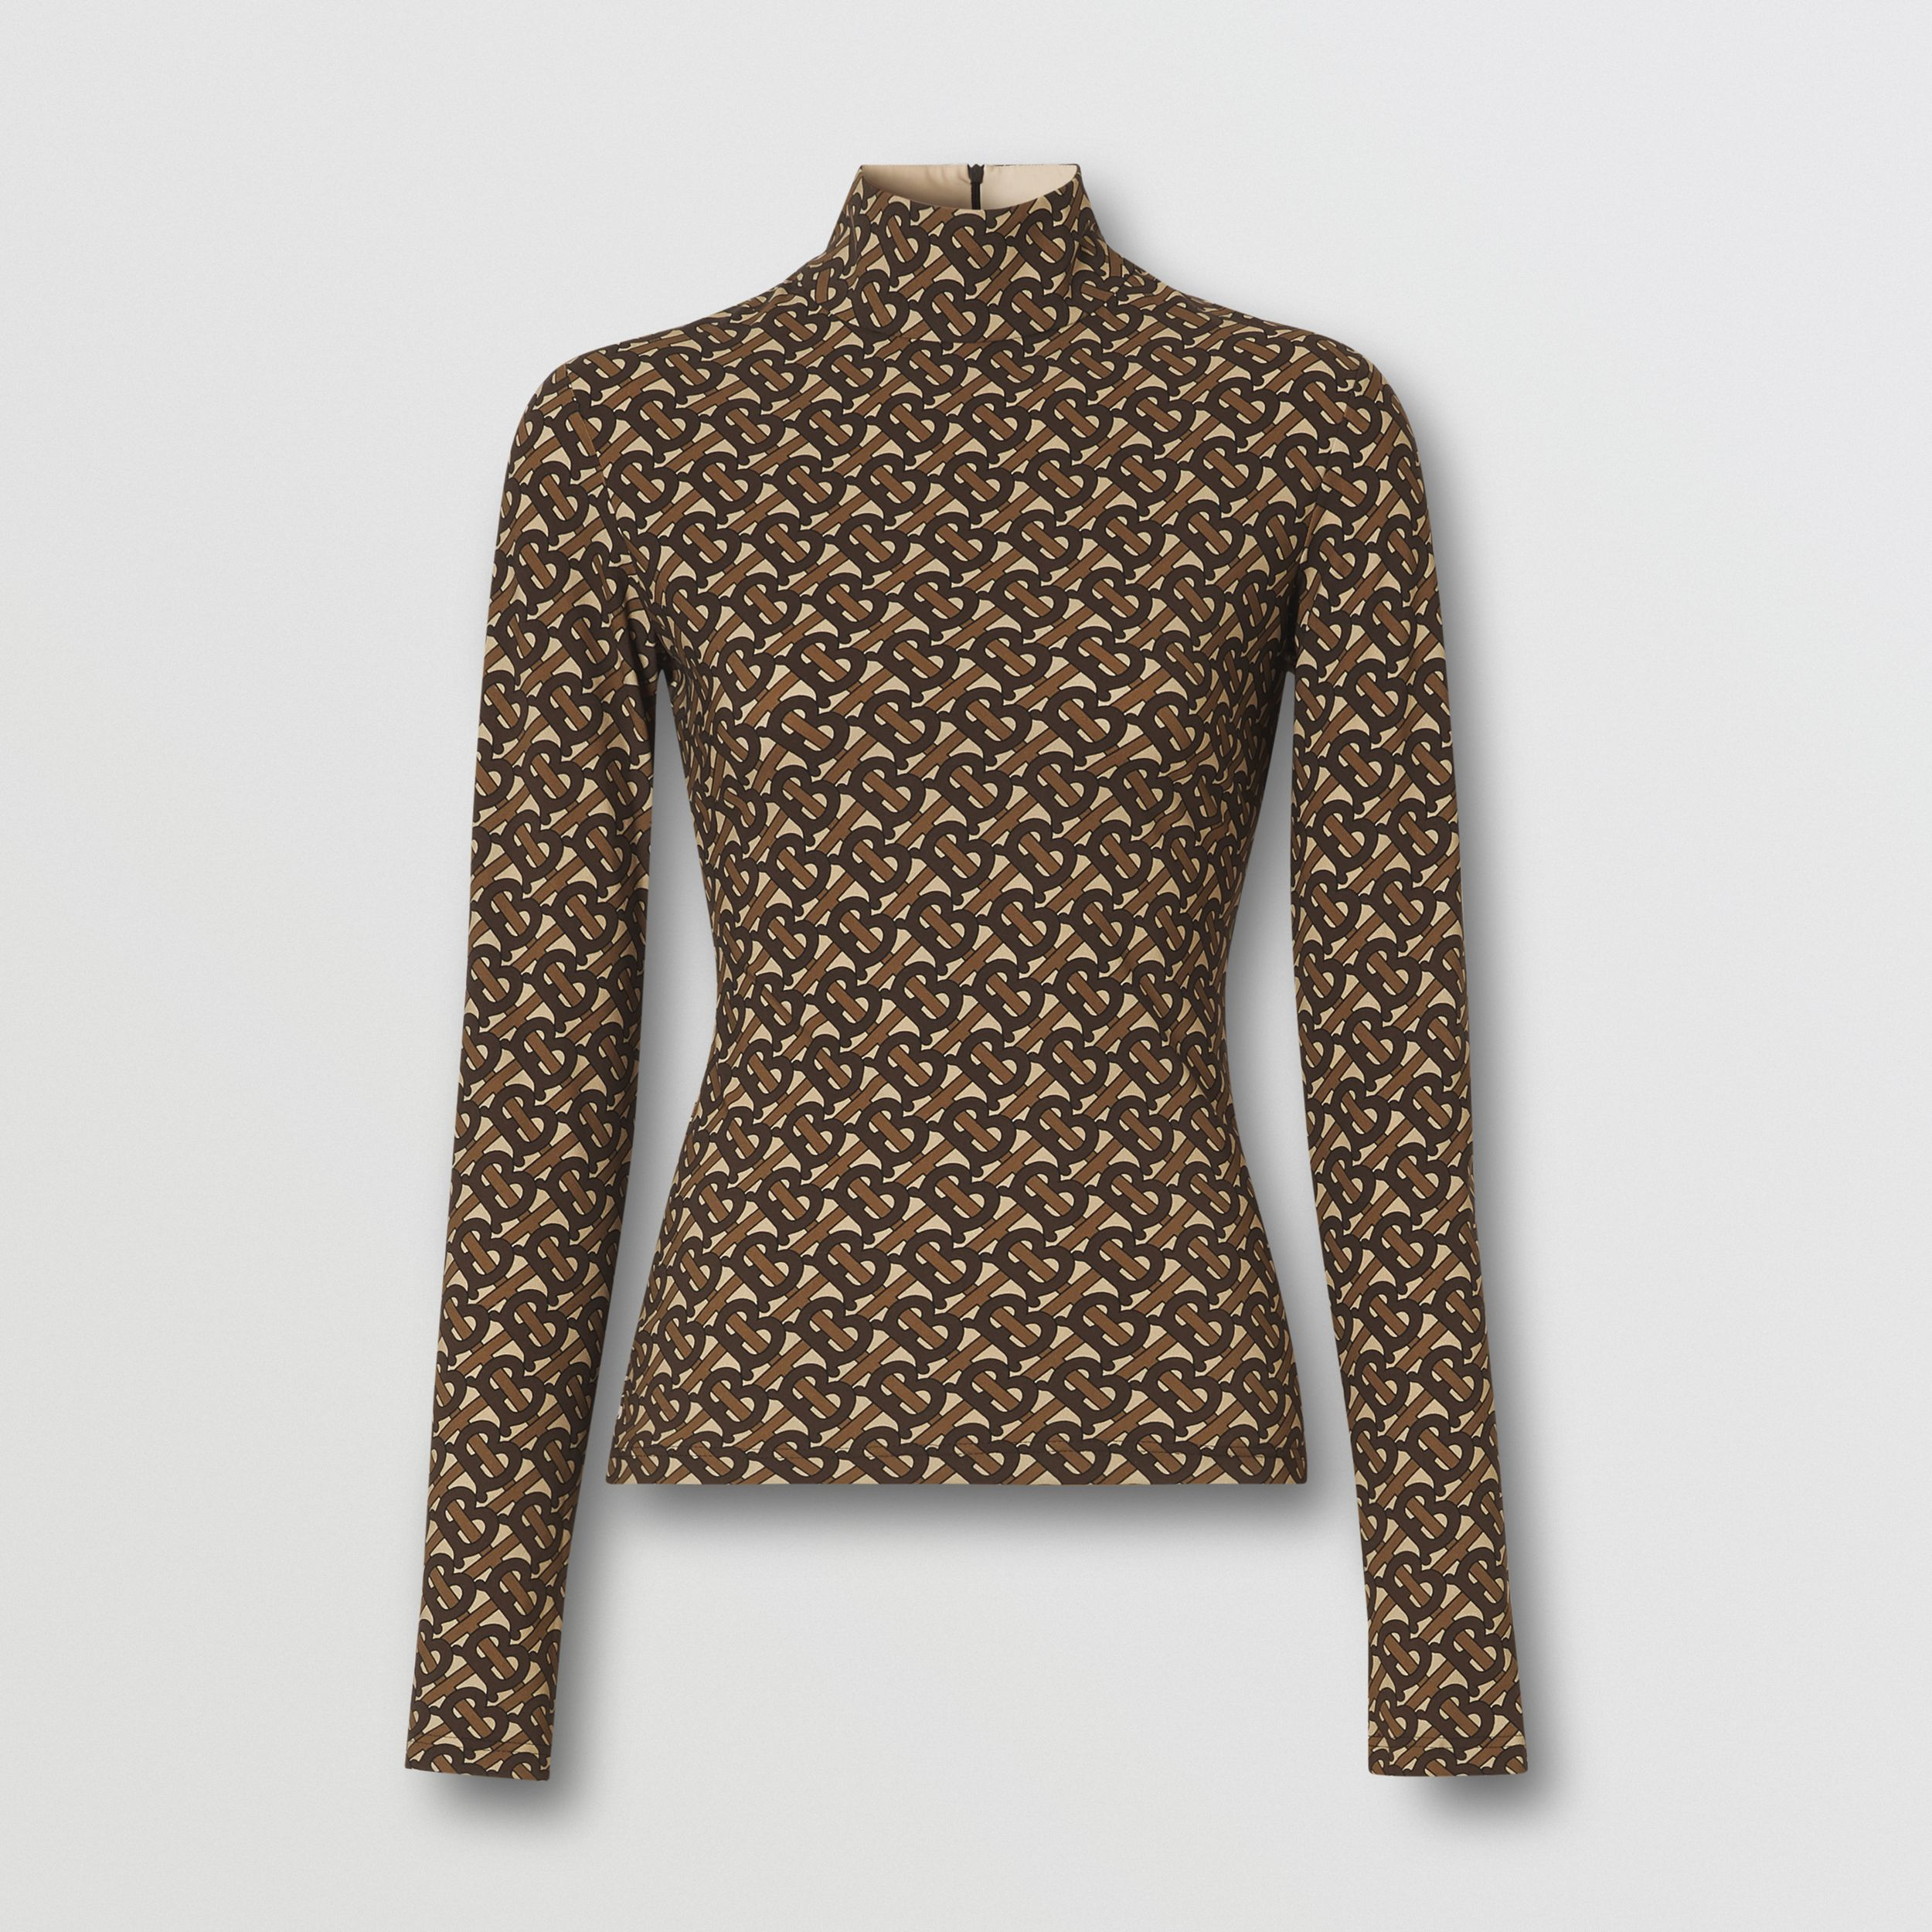 Monogram Print Stretch Nylon Turtleneck Top - Women | Burberry Hong Kong S.A.R. - 4